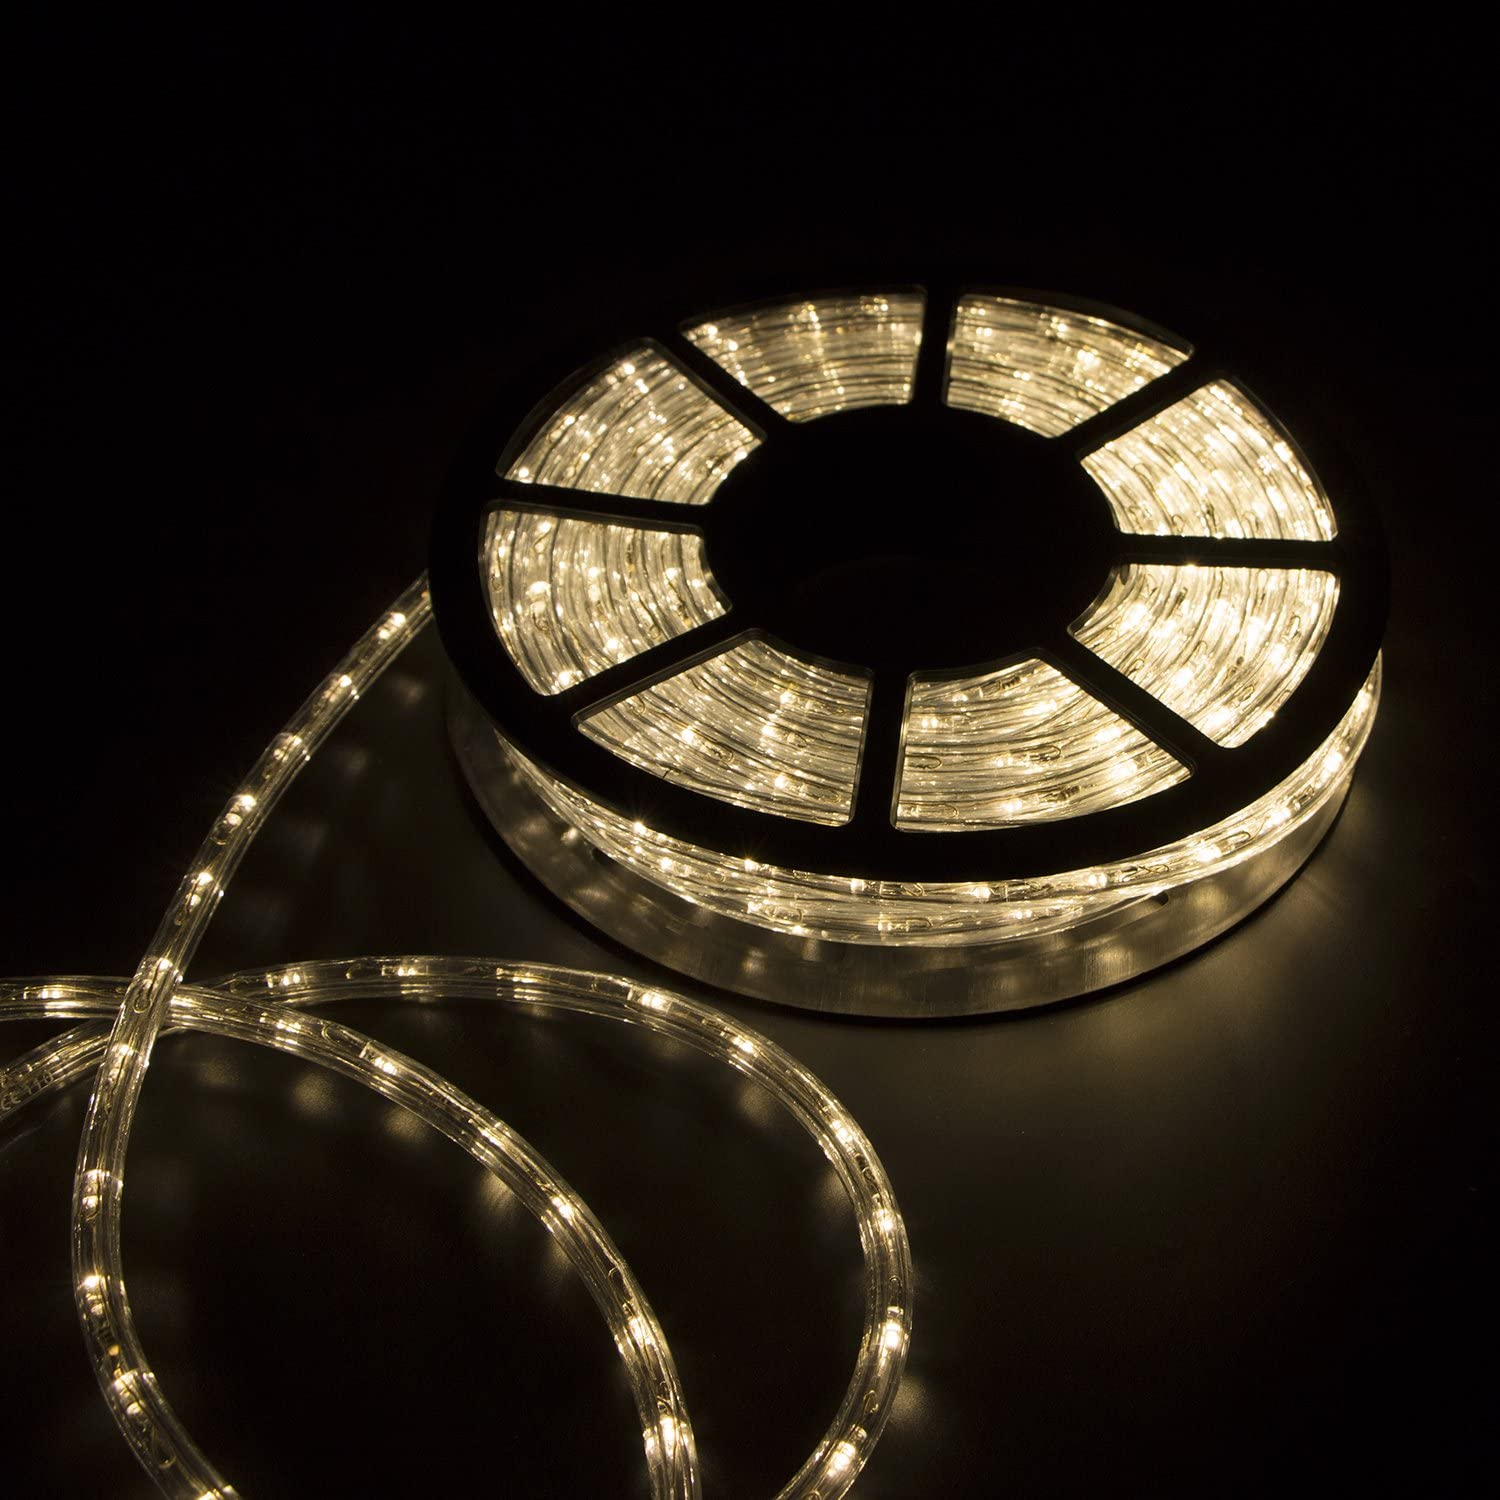 Sliverylake Warm White 100FT led Rope Lights Home in/Outdoor Christmas Decorative Party Lighting 1080 LEDs 2 Wire 110V